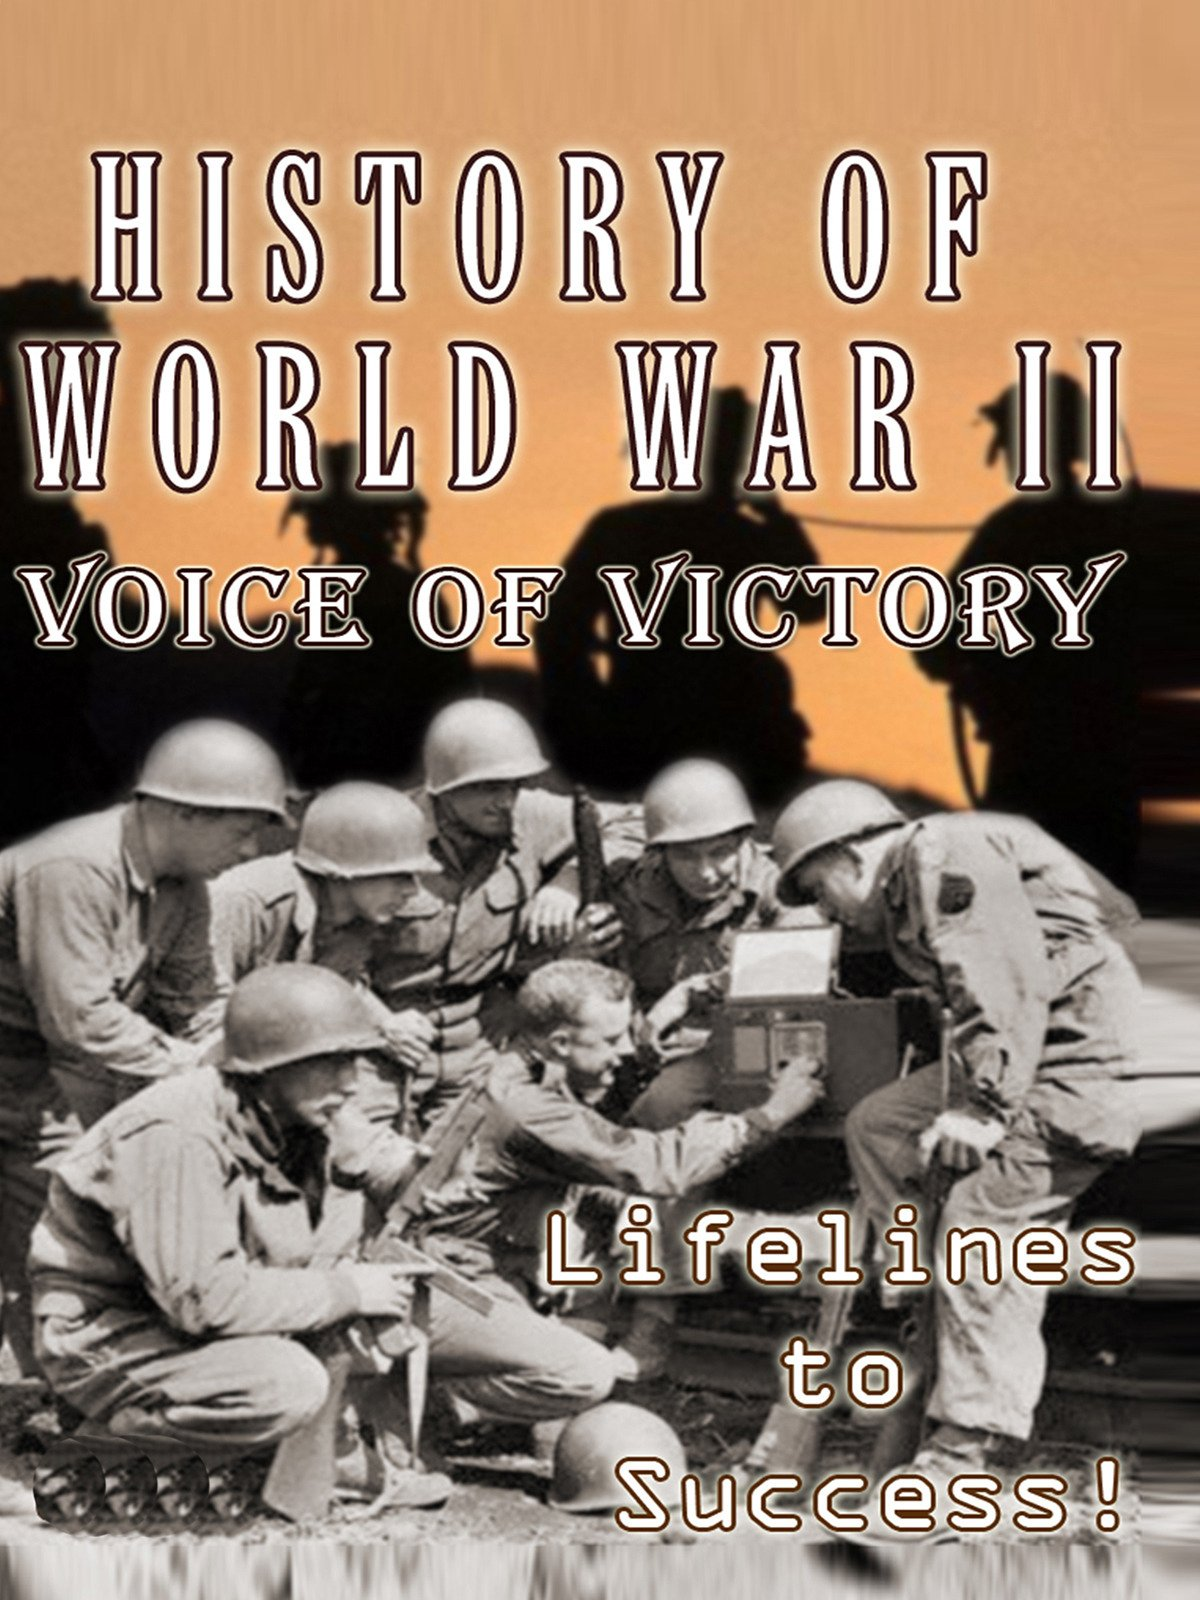 History of World War II - Voice of Victory - Lifelines to Success! on Amazon Prime Instant Video UK